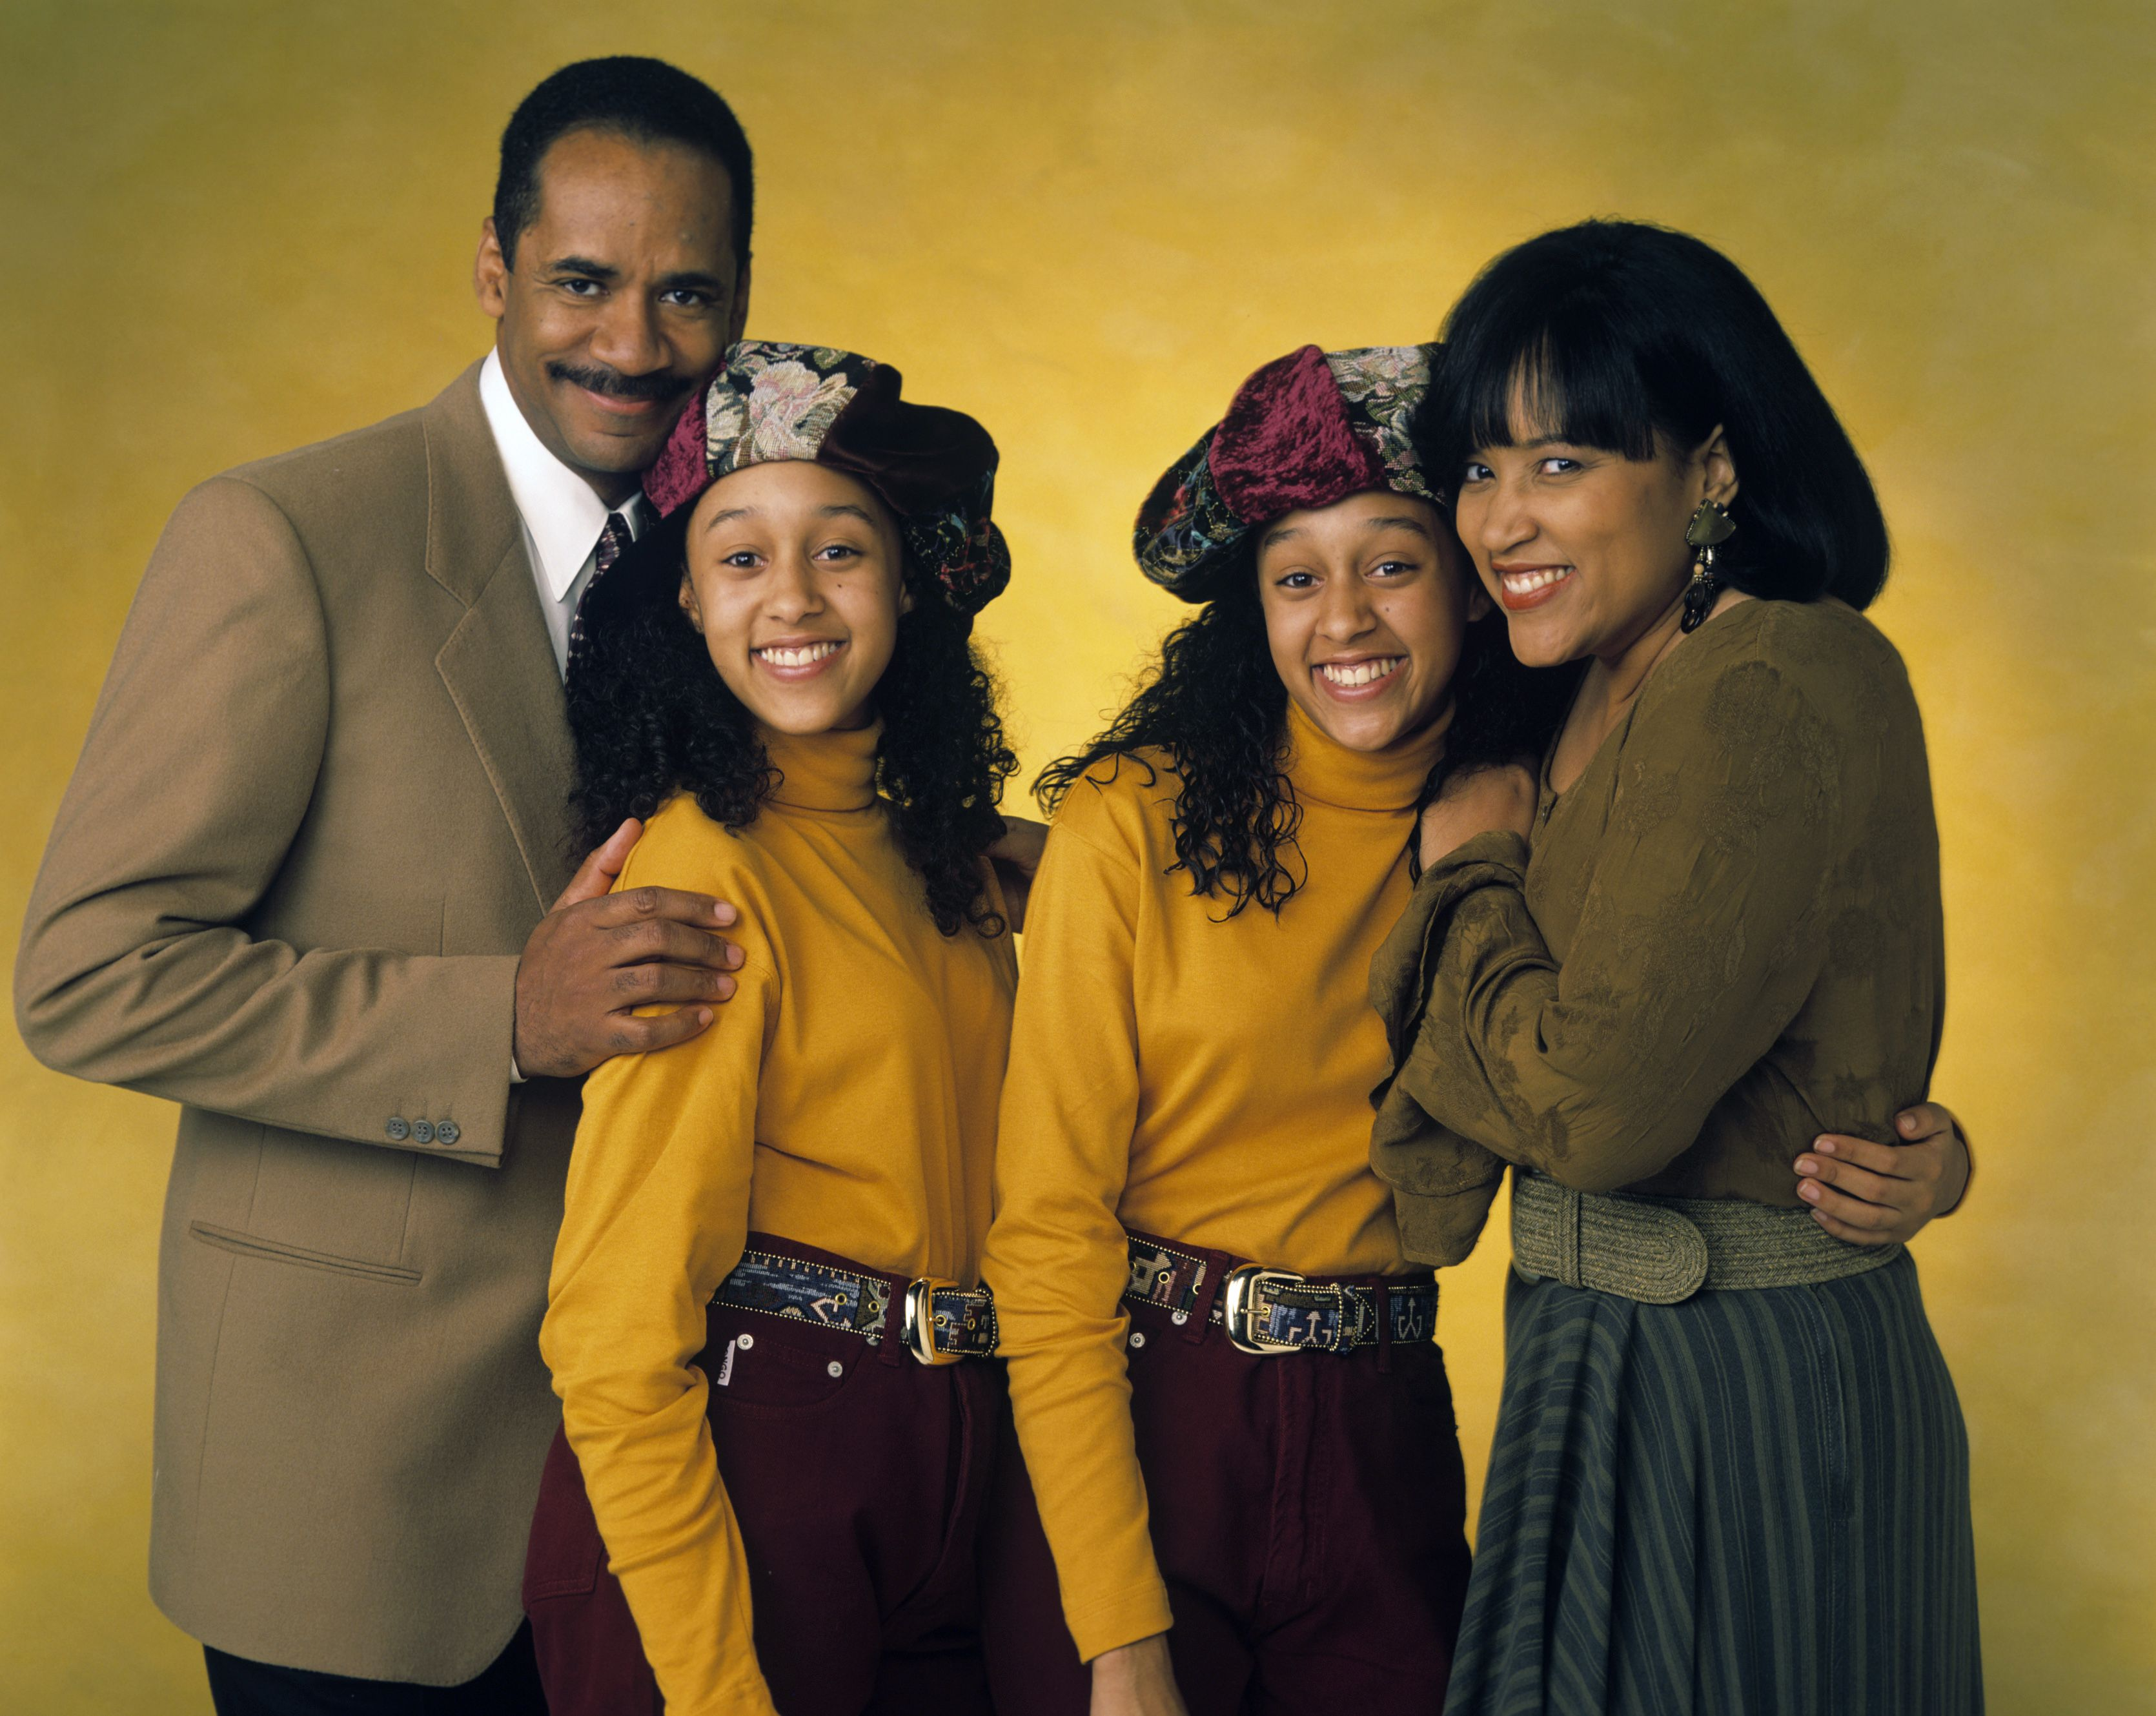 Classic Show 'Sister Sister' Coming To Netflix!